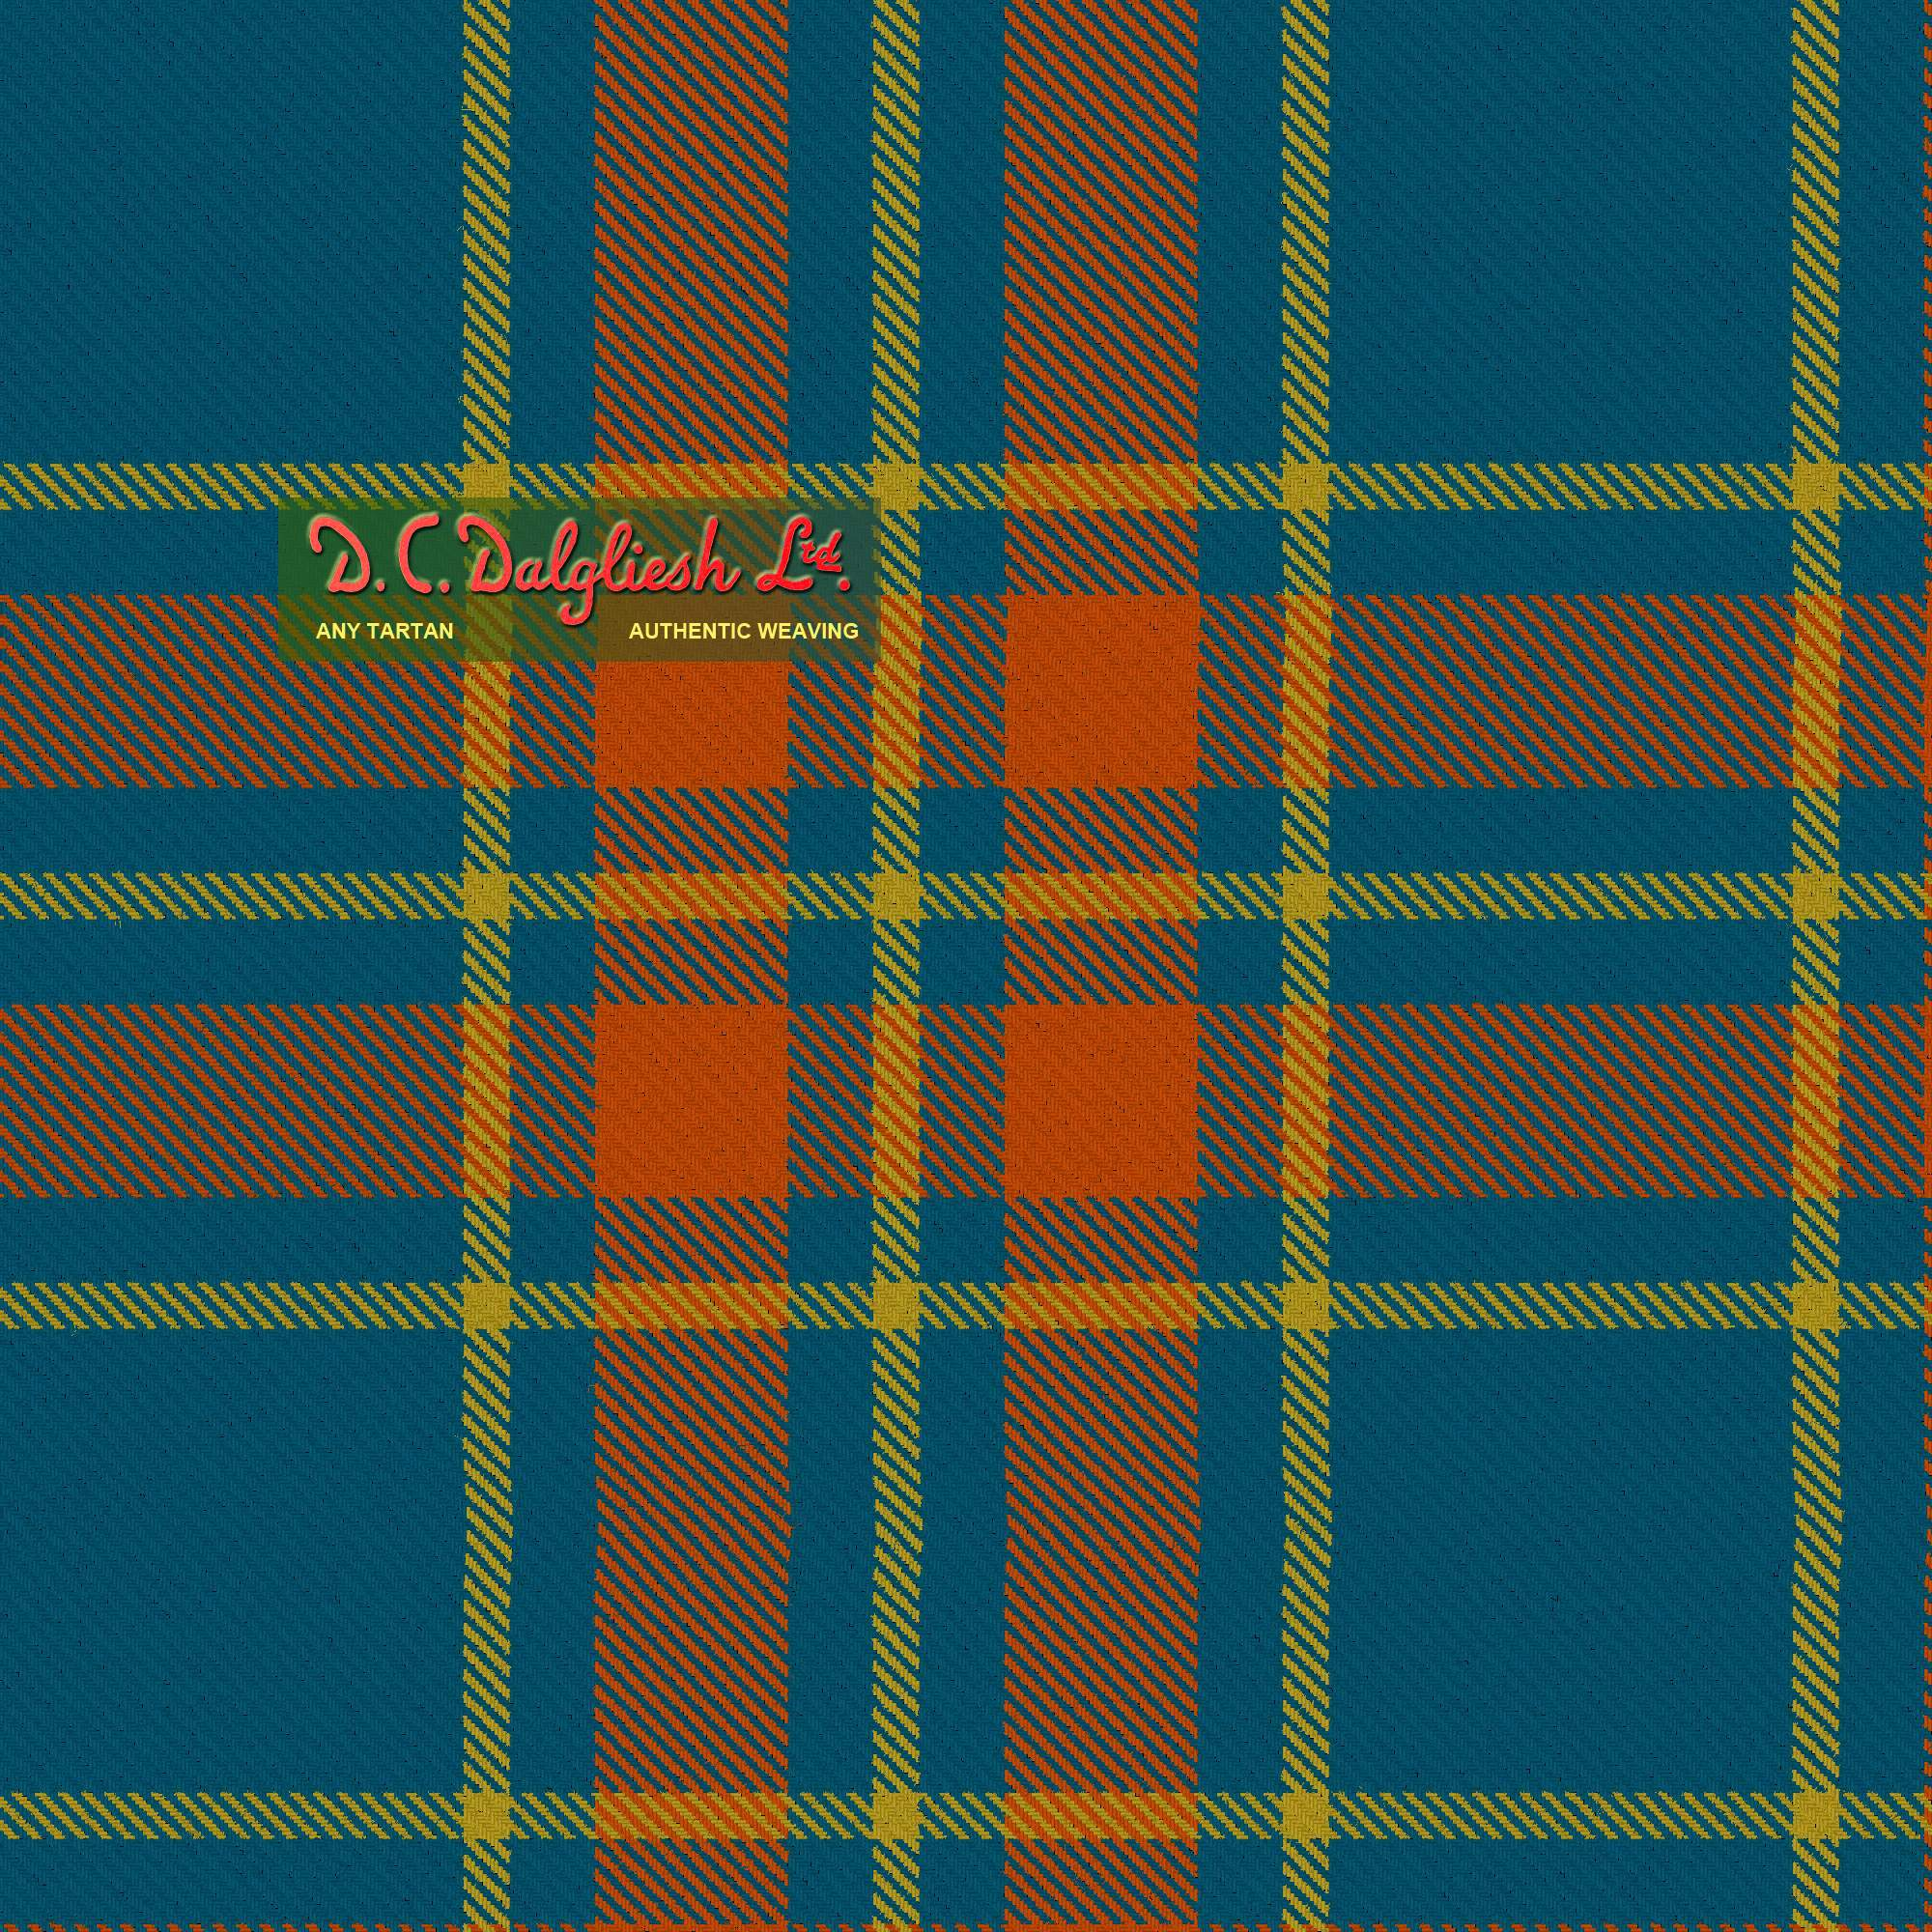 south australia pipes drums fabric by dc dalgliesh hand crafted tartans. Black Bedroom Furniture Sets. Home Design Ideas